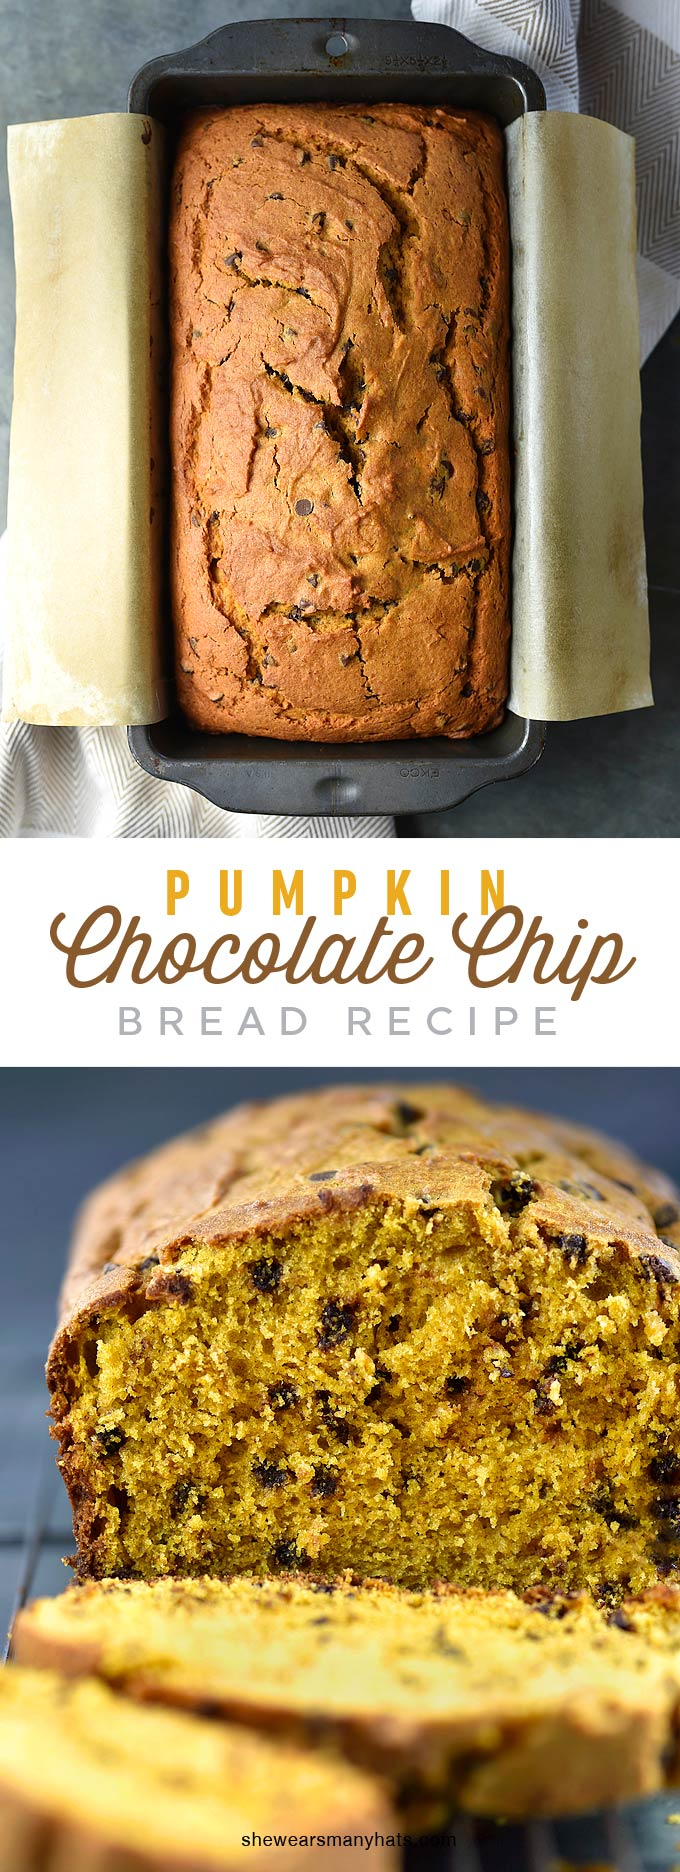 Pumpkin Chocolate Chip Bread Recipe | She Wears Many Hats